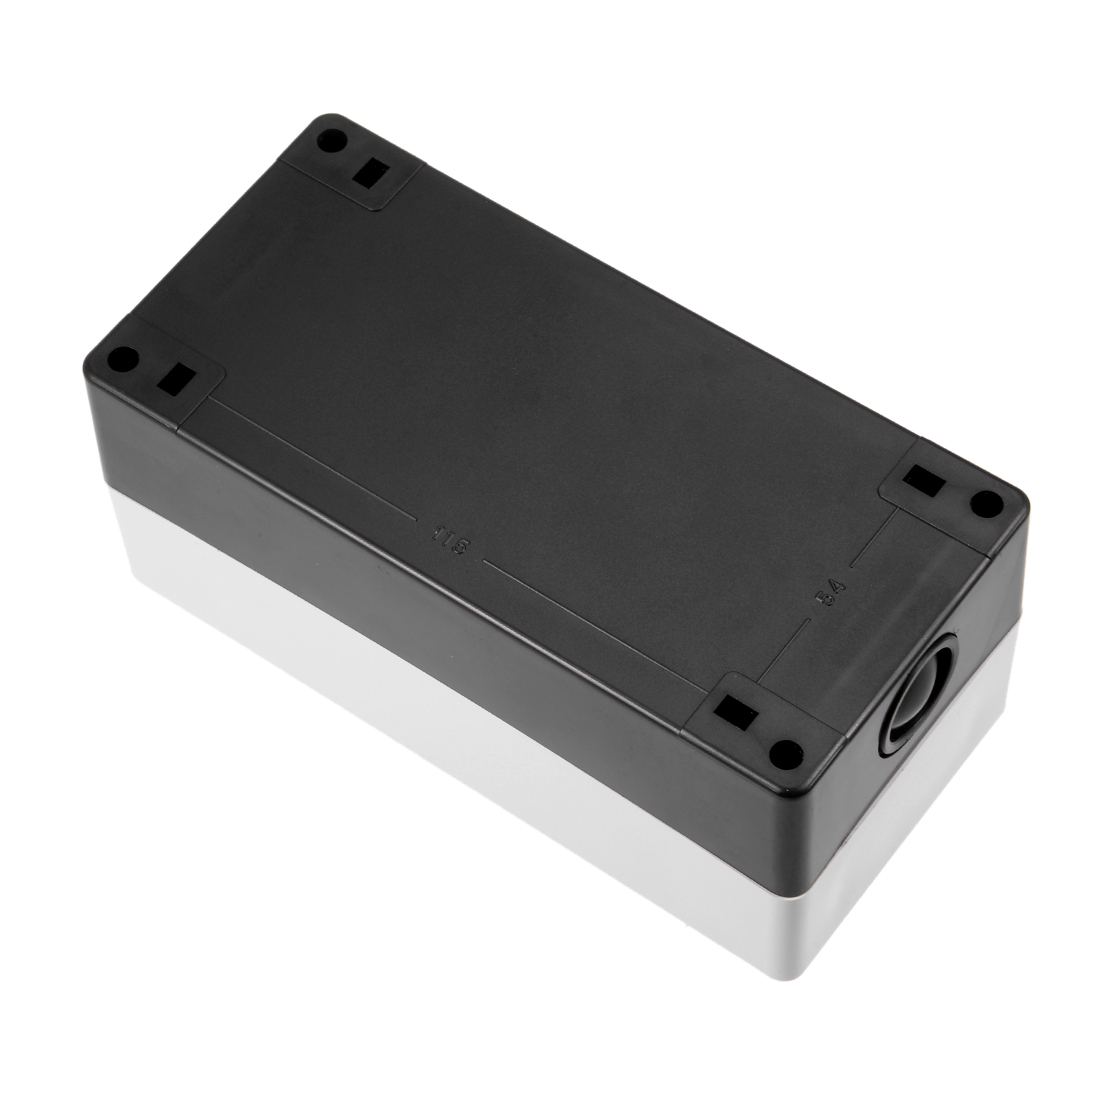 uxcell/® Push Button Switch Control Station Box 22mm 3 Button Hole Waterproof Black and White